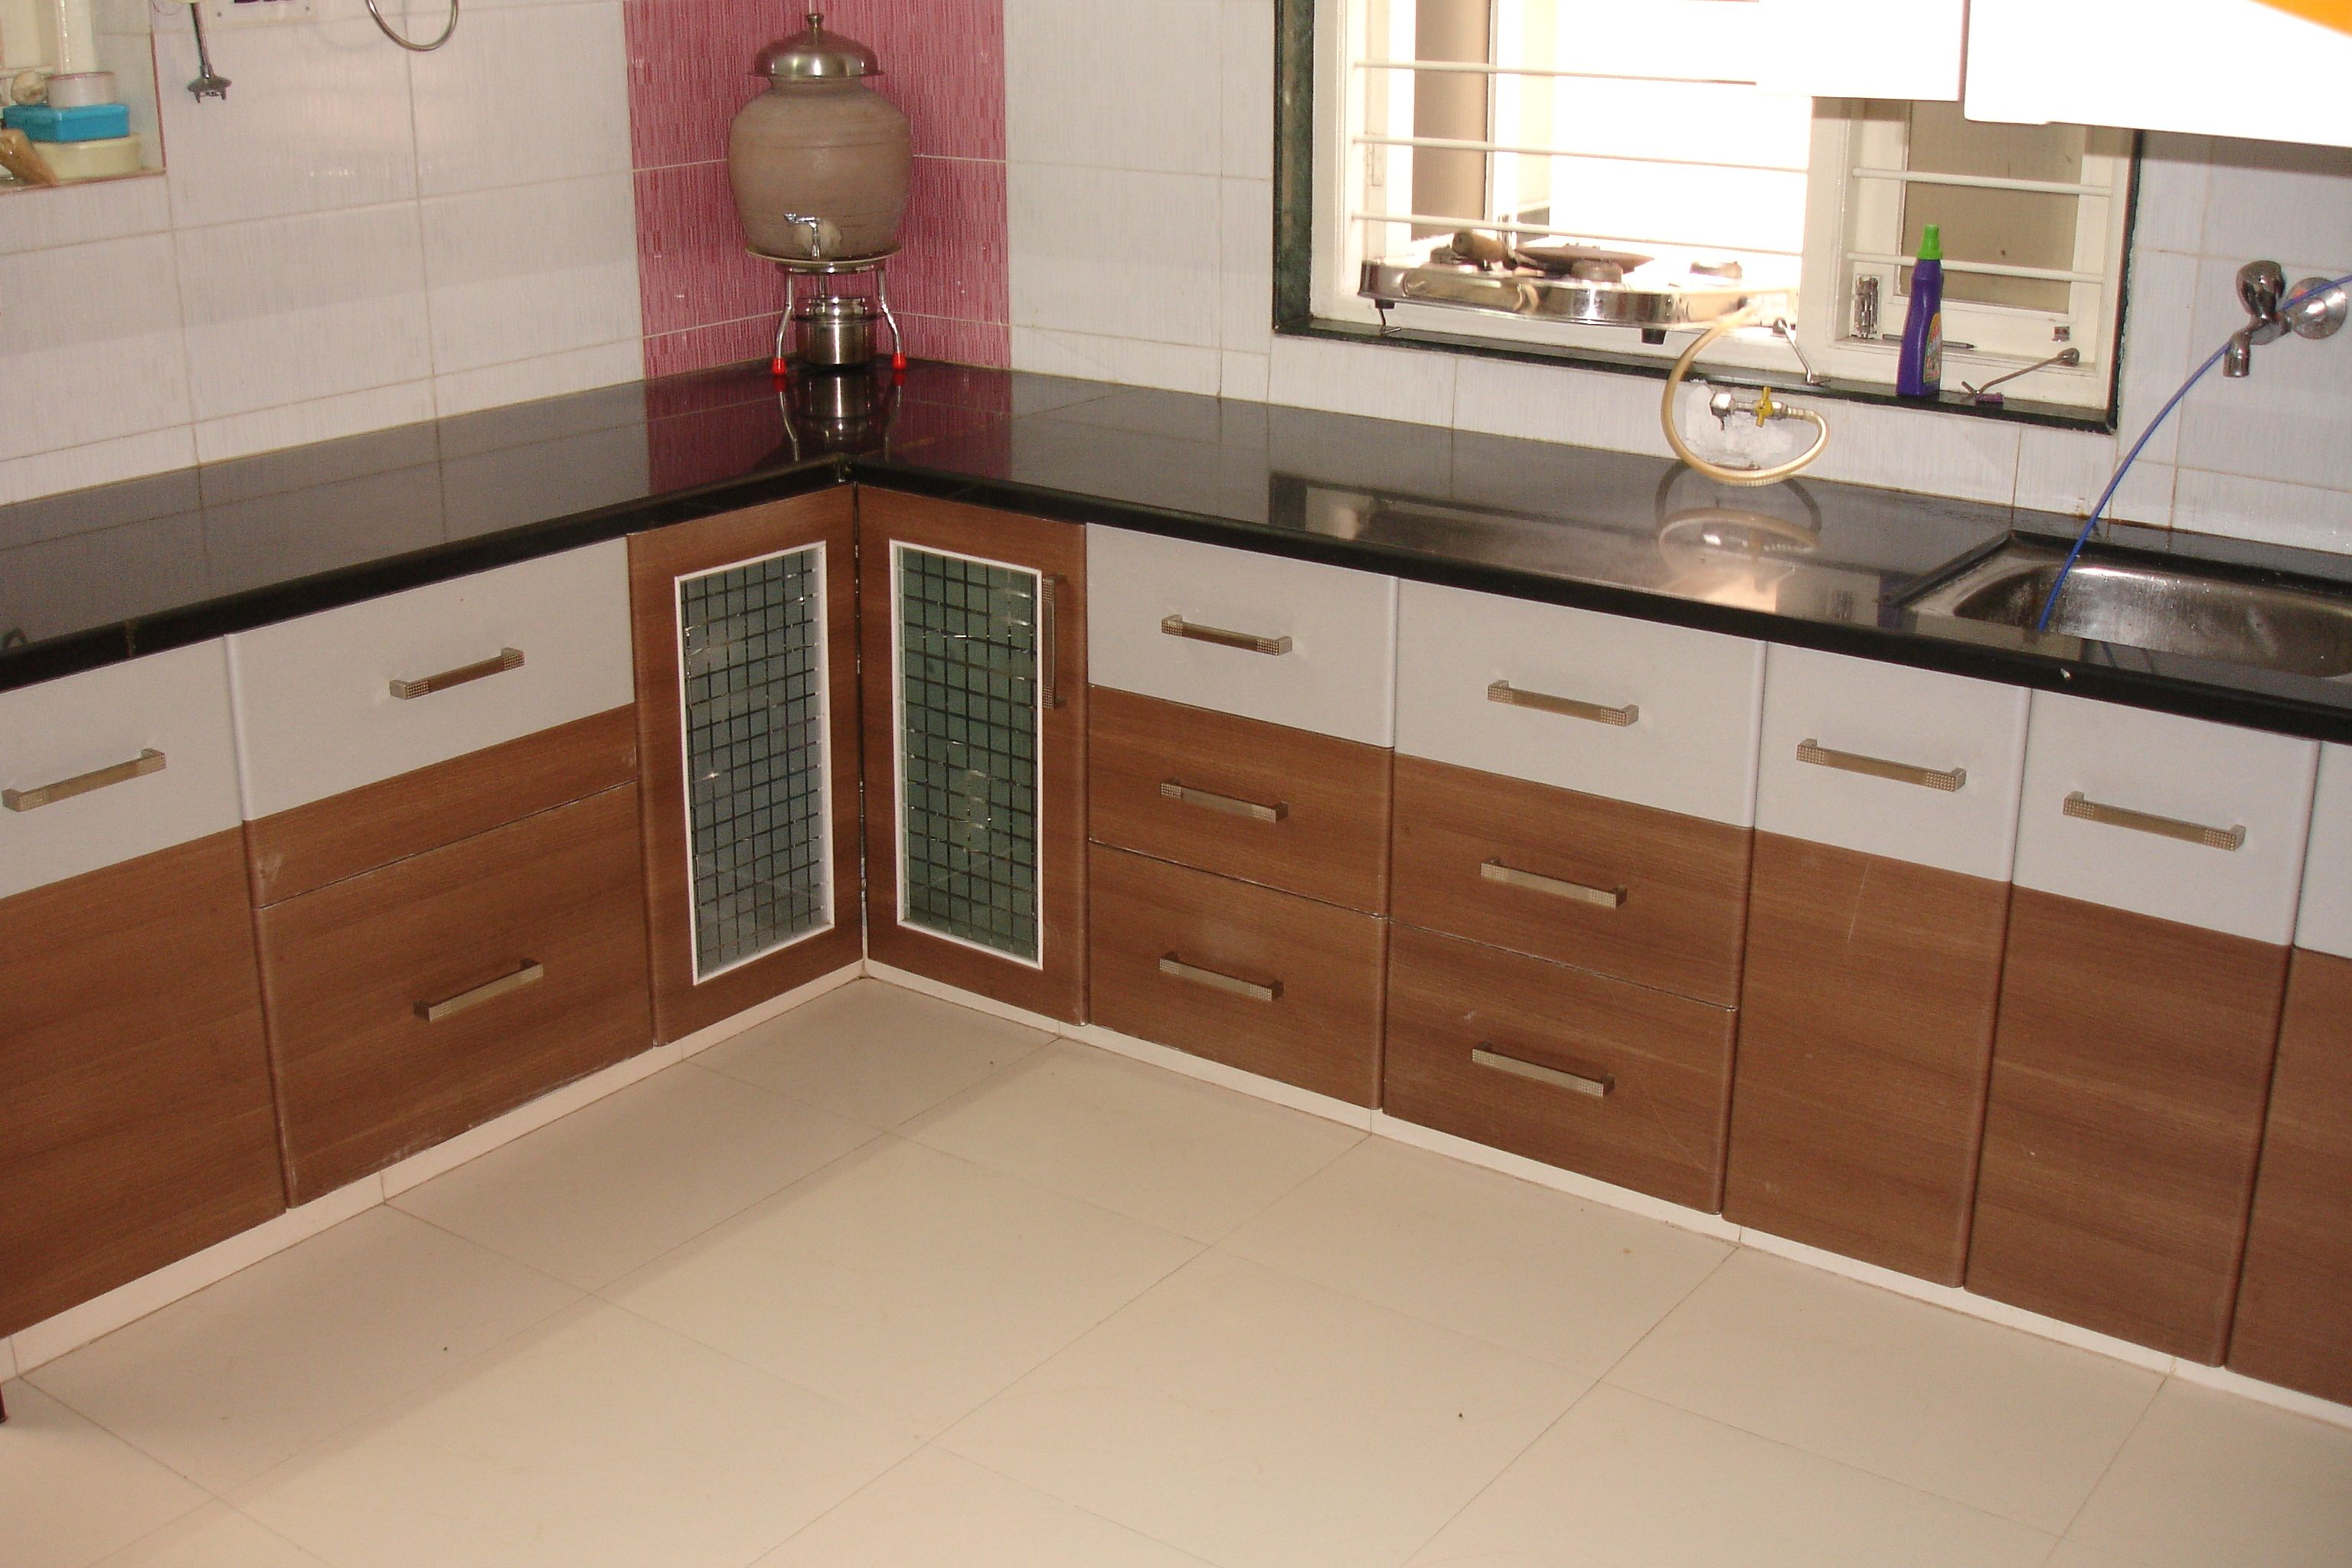 t shaped modular kitchen designer in meerut - call meerut kitchens